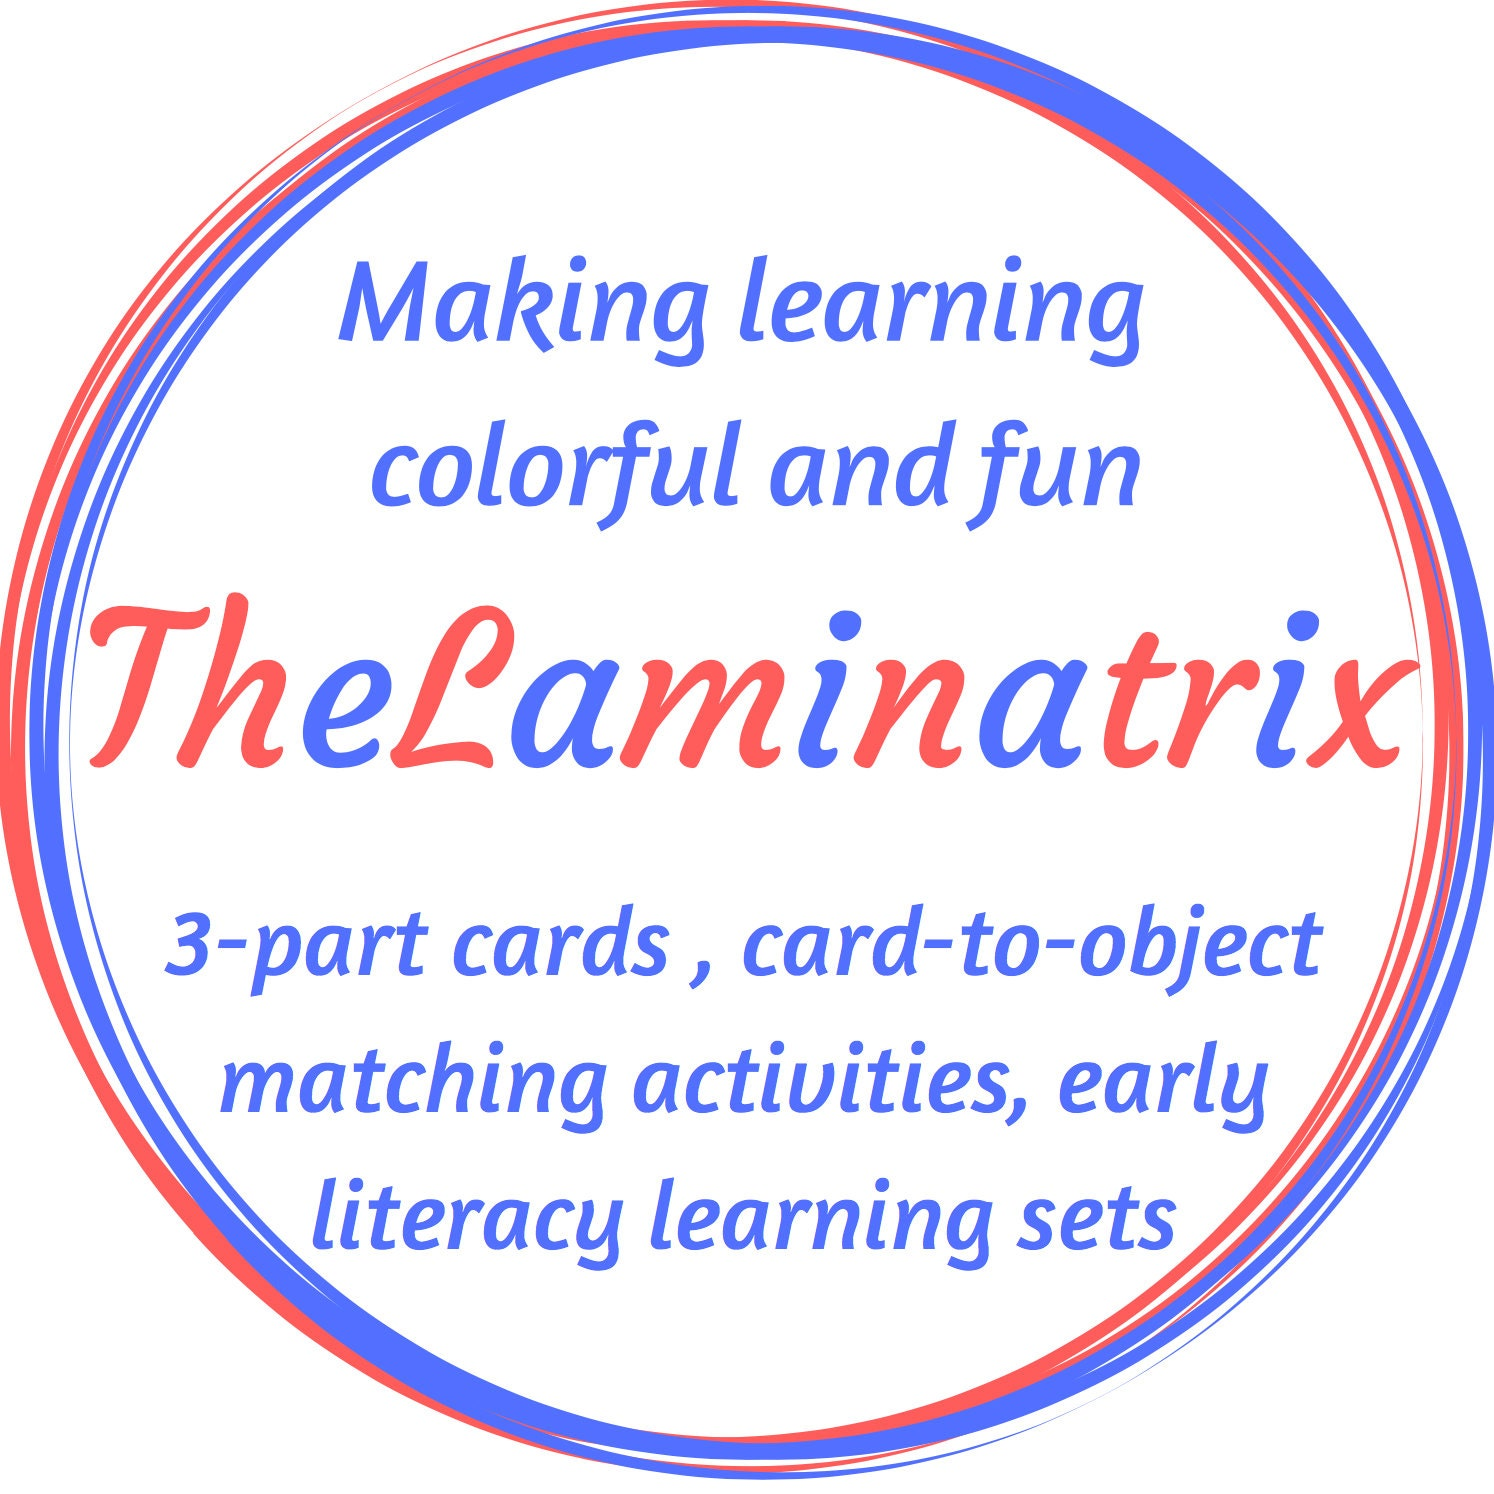 montessori inspired materials by thelaminatrix on etsy